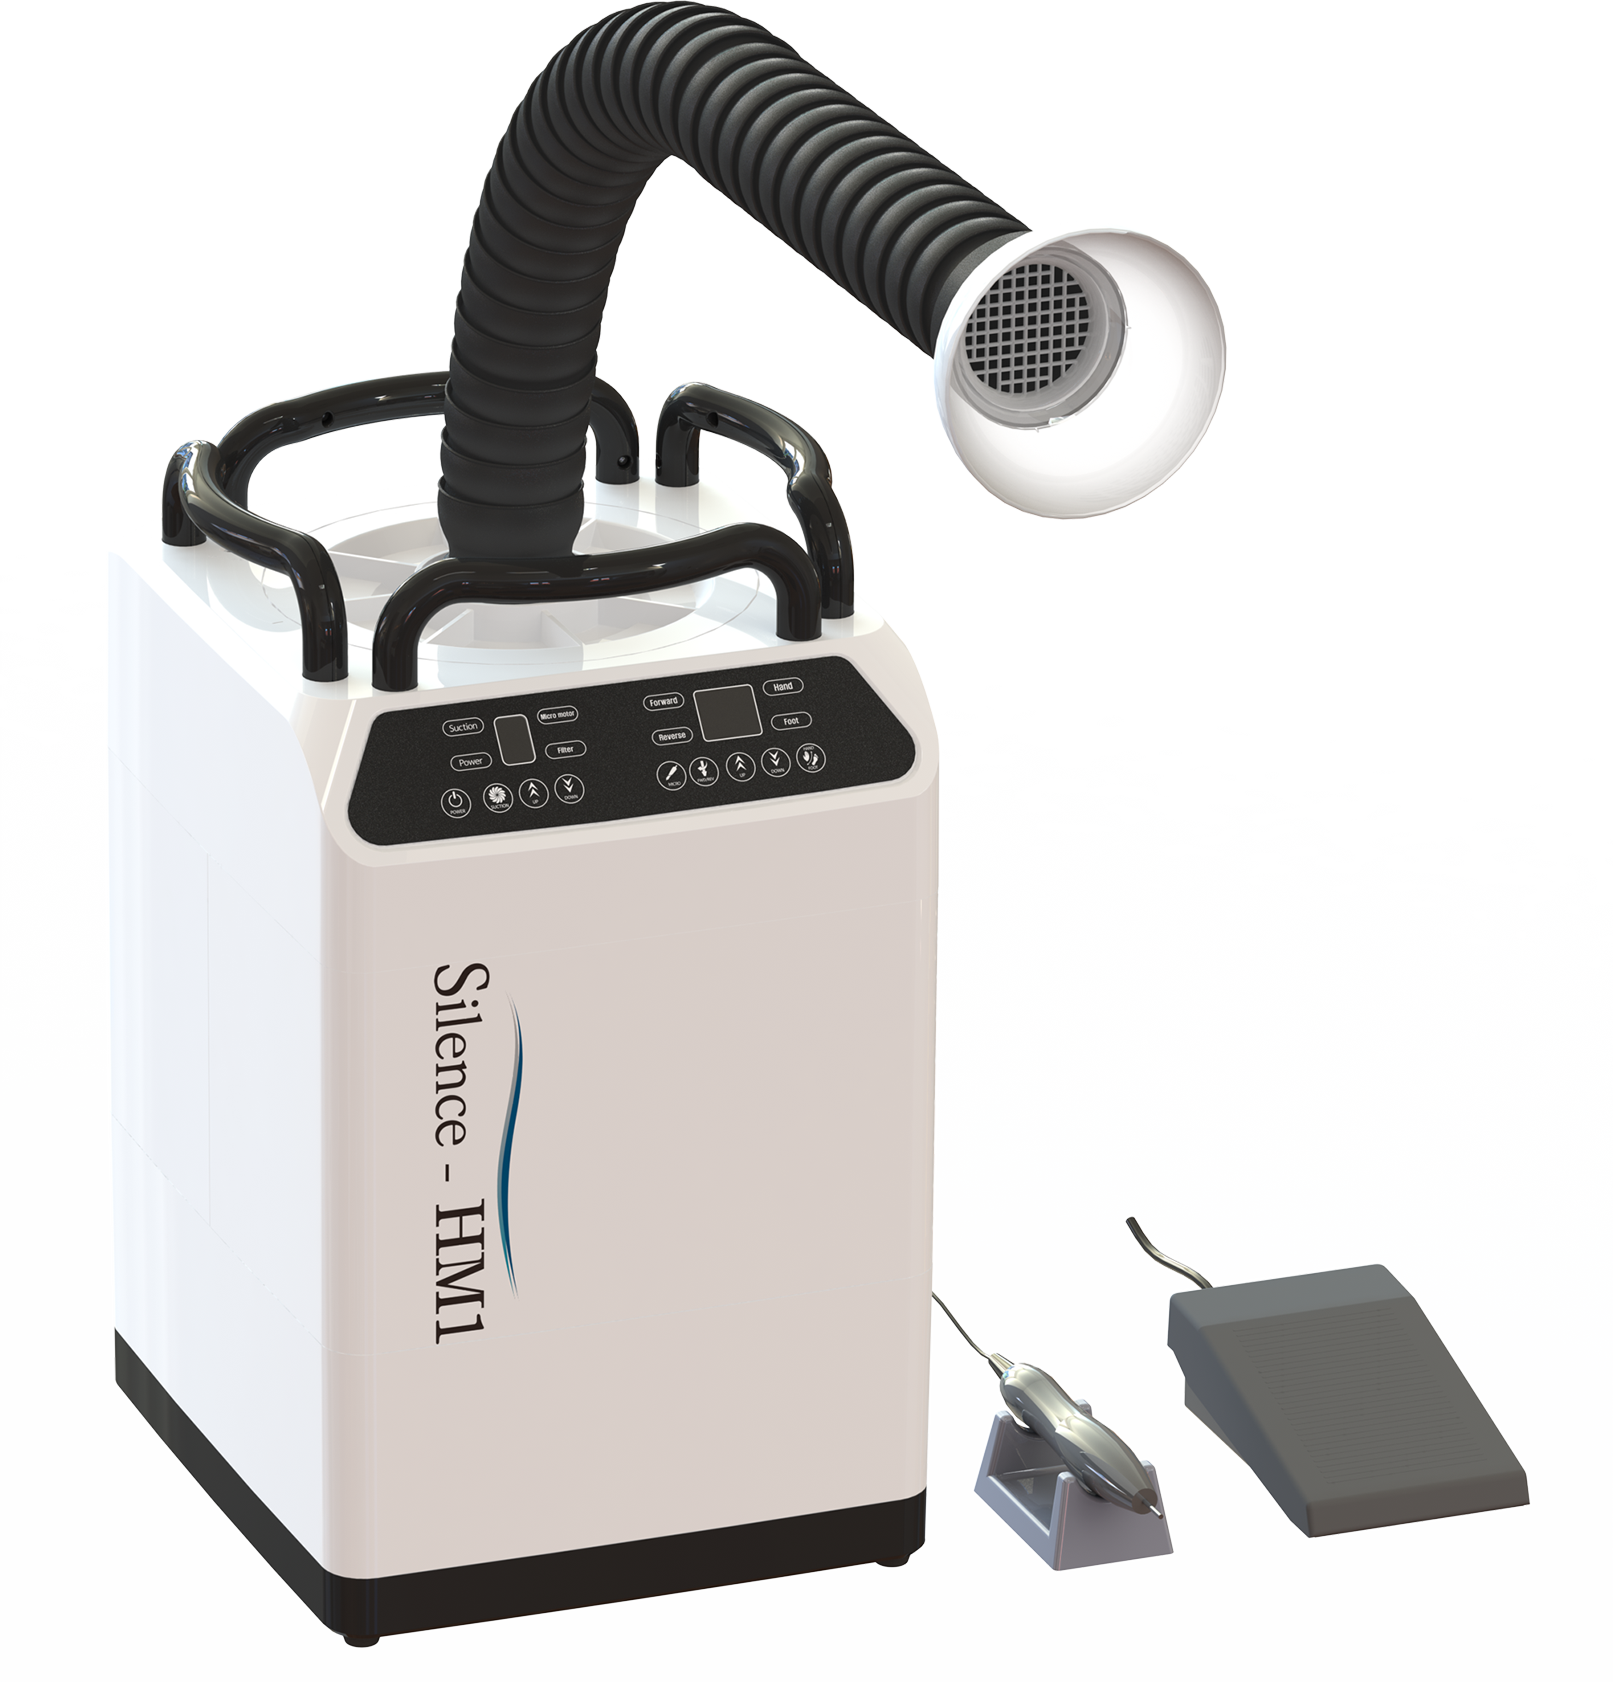 KO-MAX_Silence-A100_extraoral vacuum suction_Aerosol suction_dental dust collector_dermatology laser inhaler_dust collector_UVC LED sterilization_plasma sterilizer